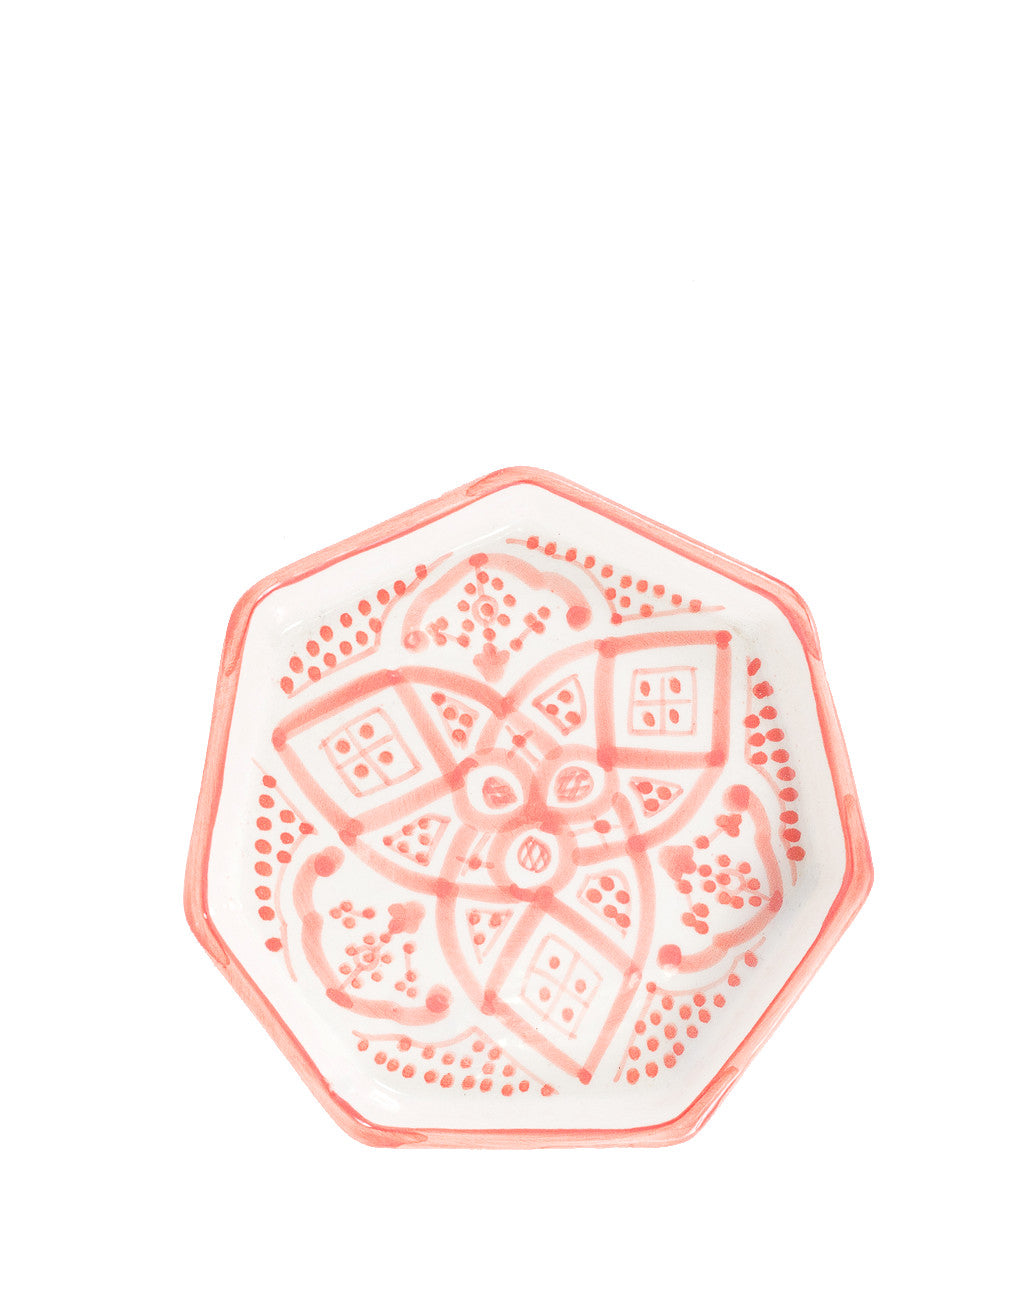 Fair Trade, Handmade Moroccan Ceramic Trinket Tray, Pink